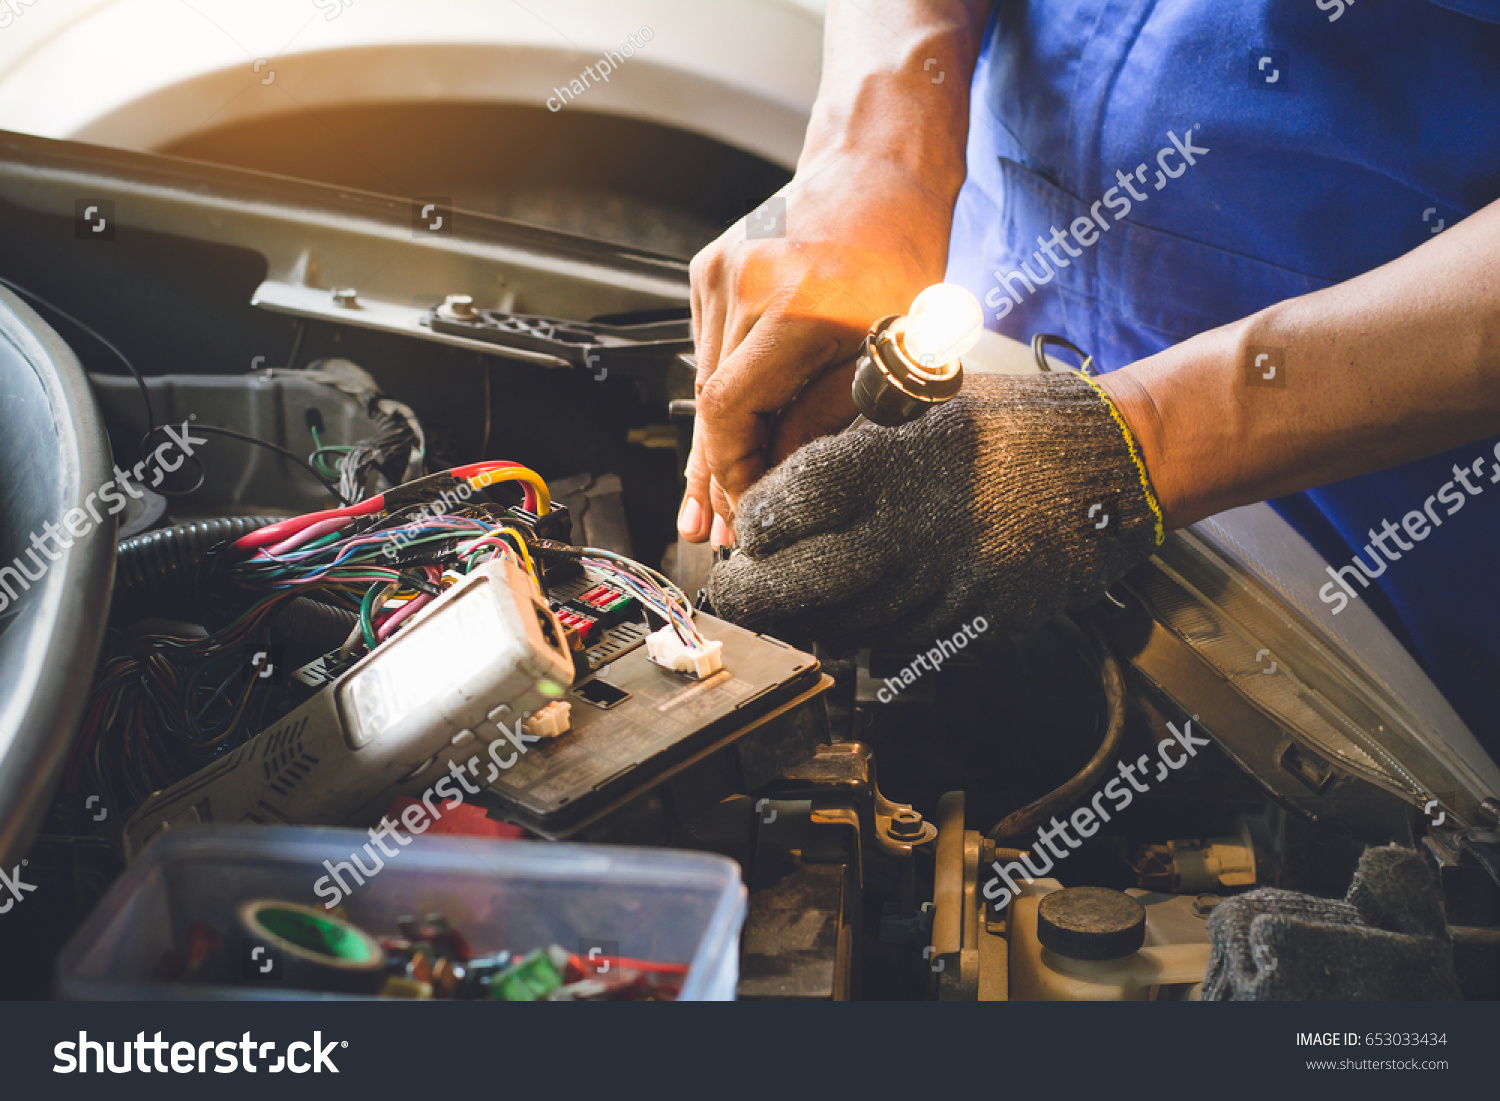 technicain checking car fuse by lamp tester which nagative pole of lamp  tester connected with car